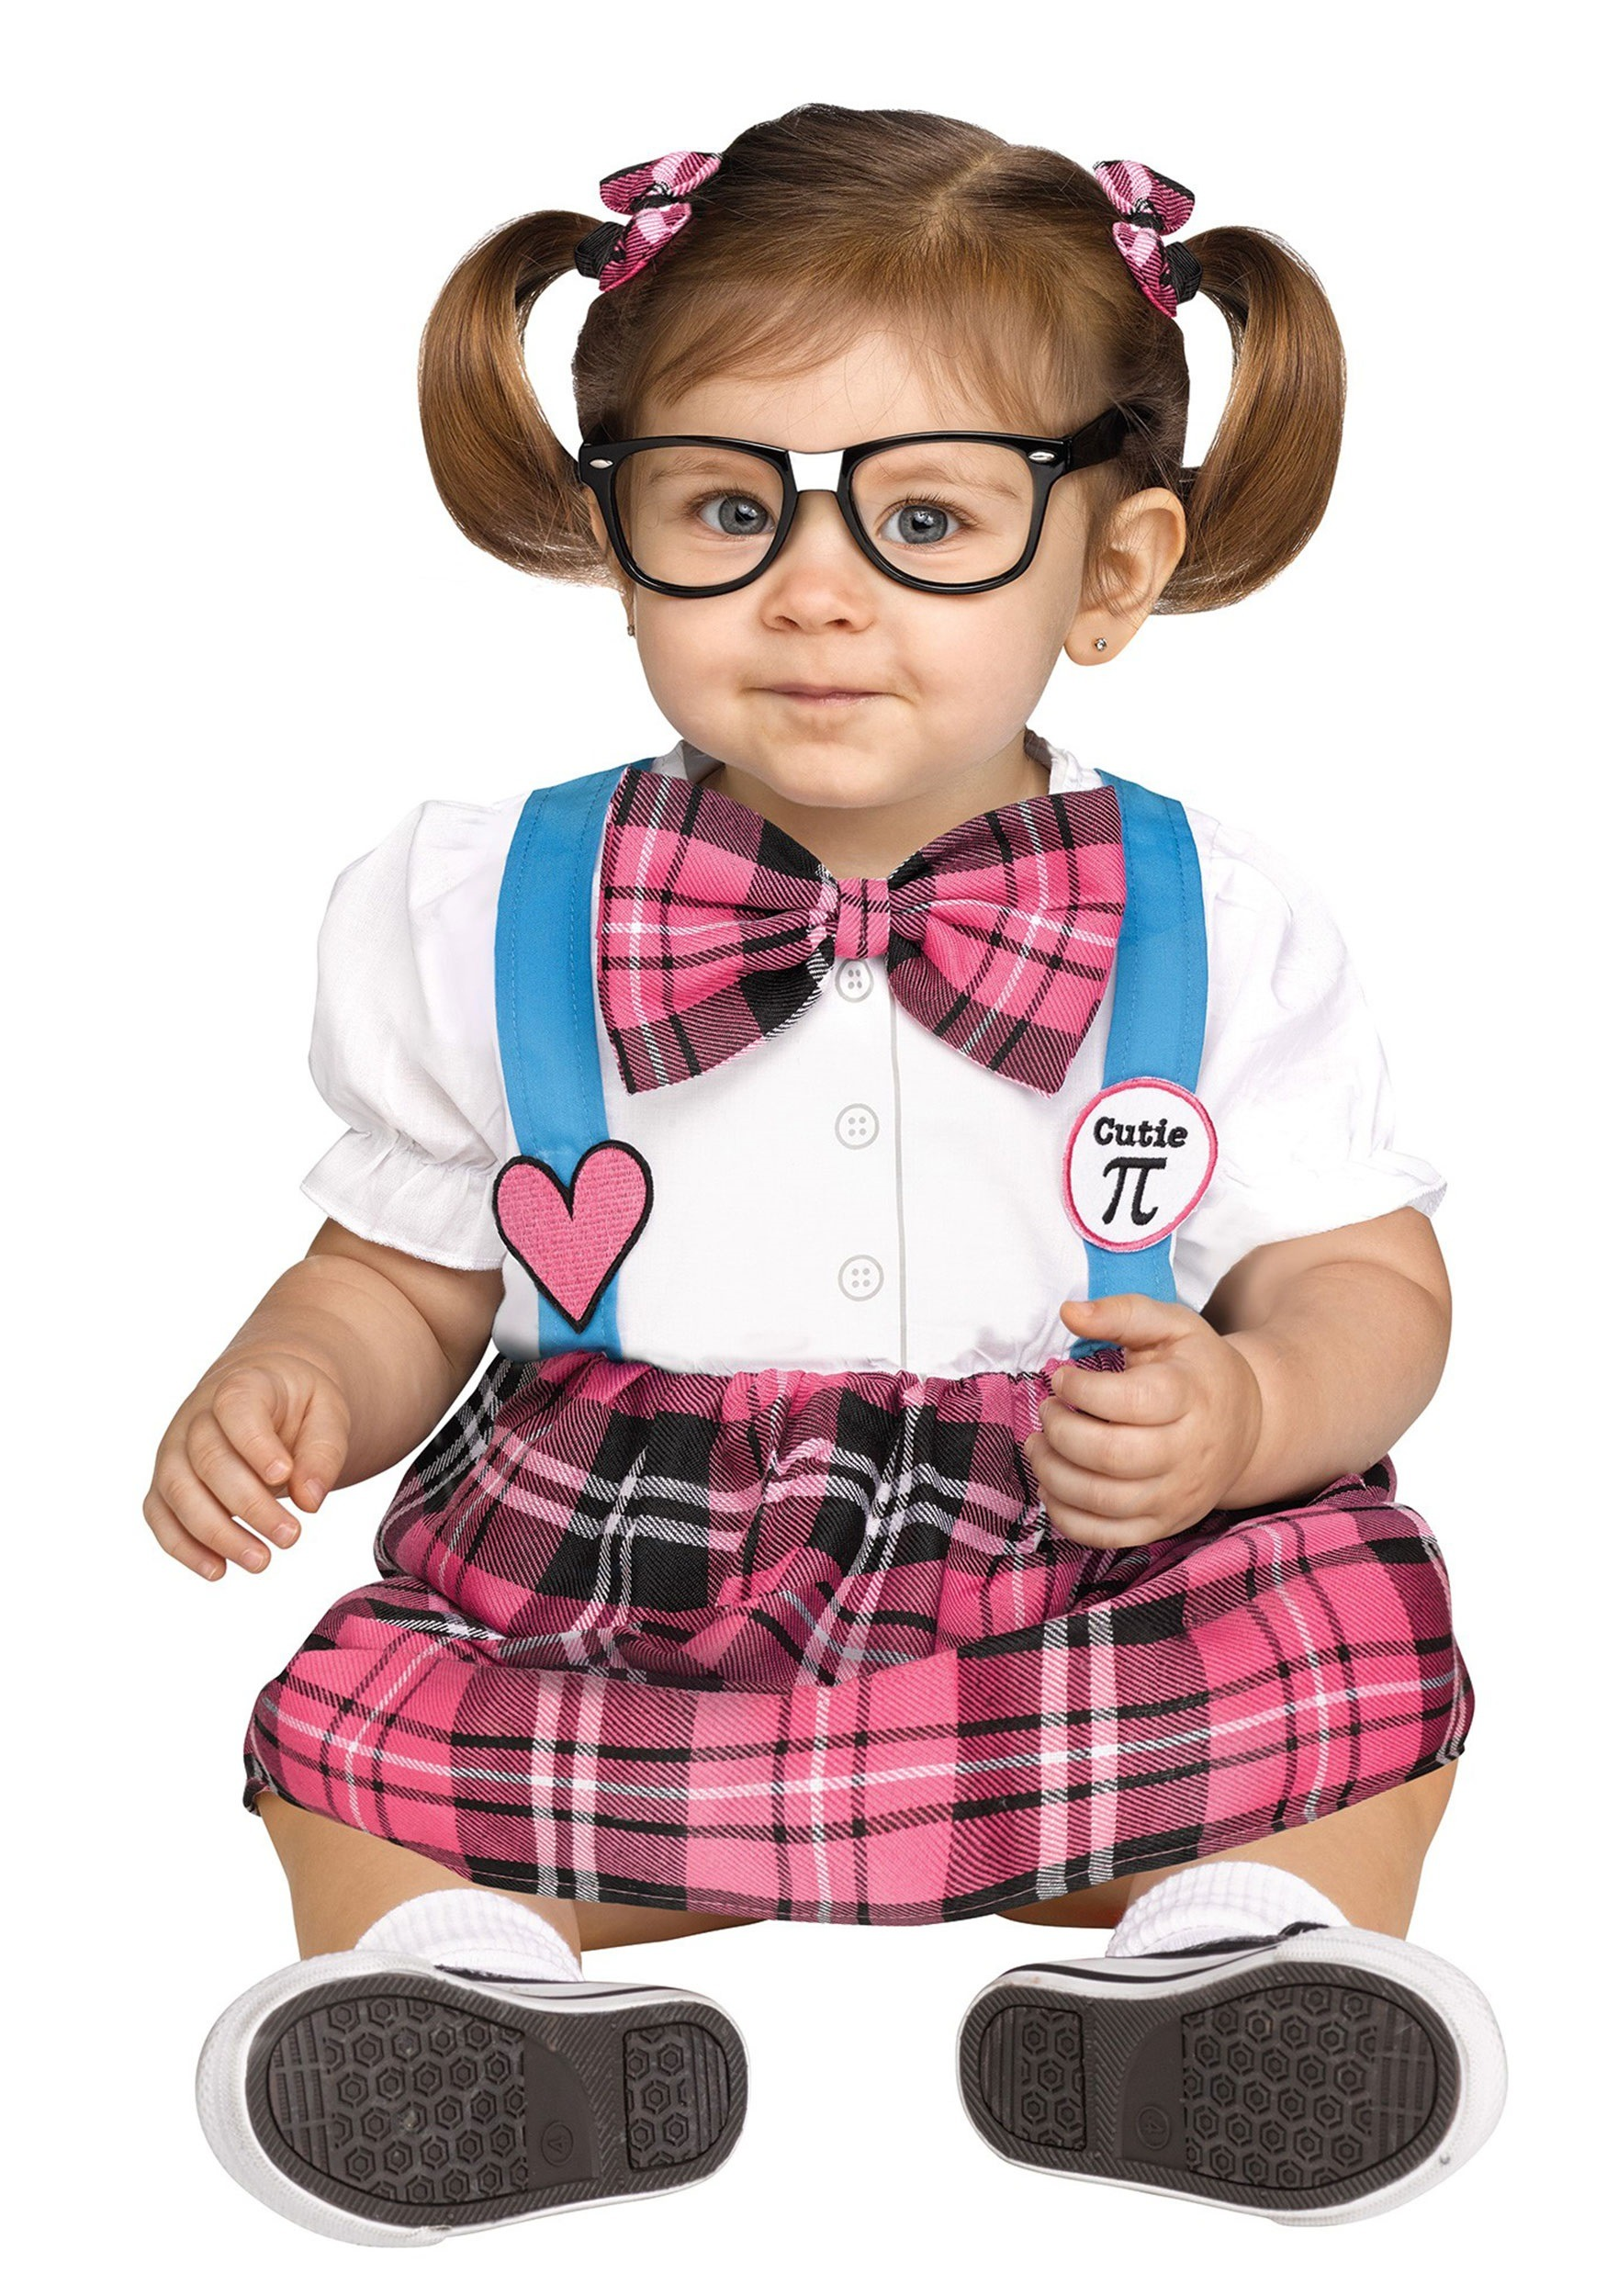 Toddler Cutie Pi Nerd Costume